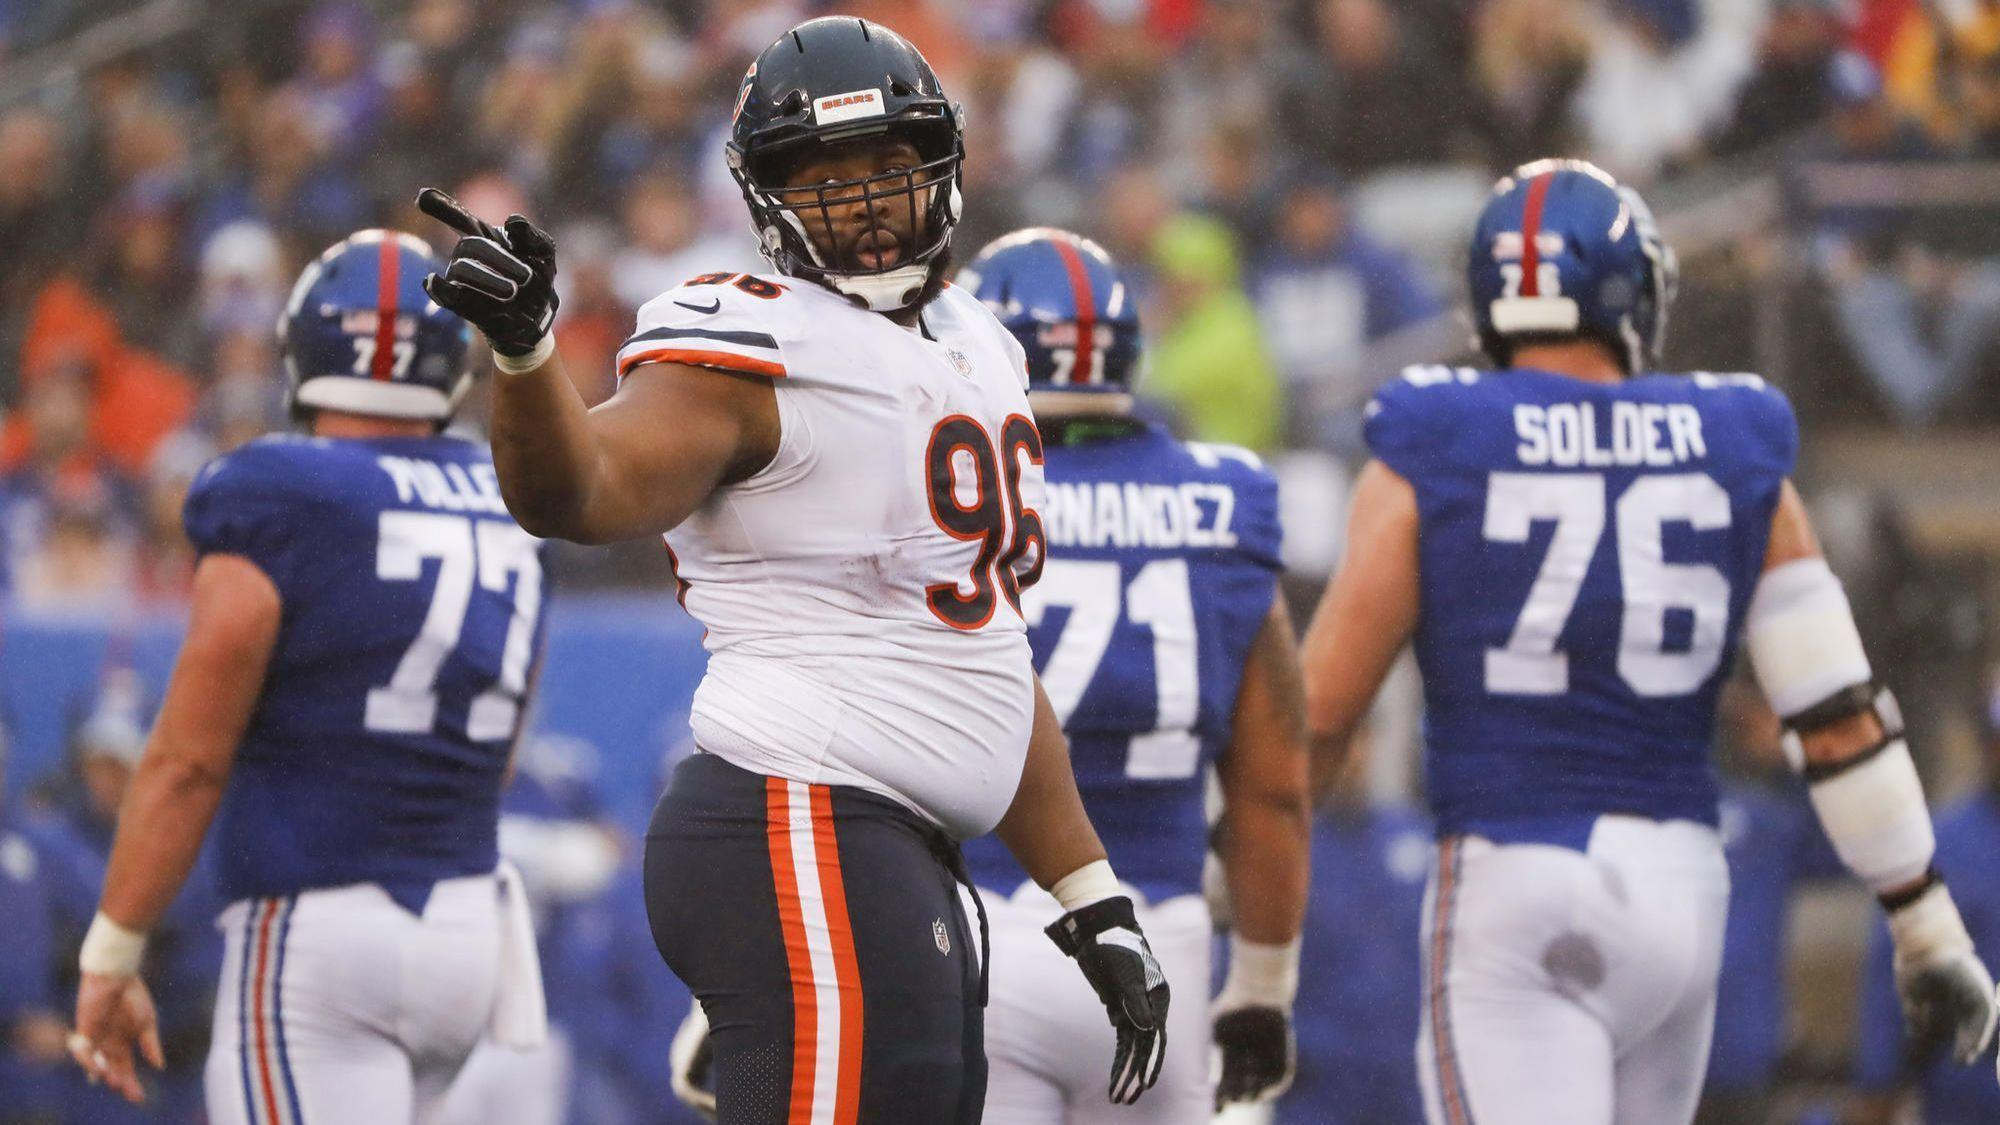 Ct-spt-bears-giants-brad-biggs-10-thoughts-20181203